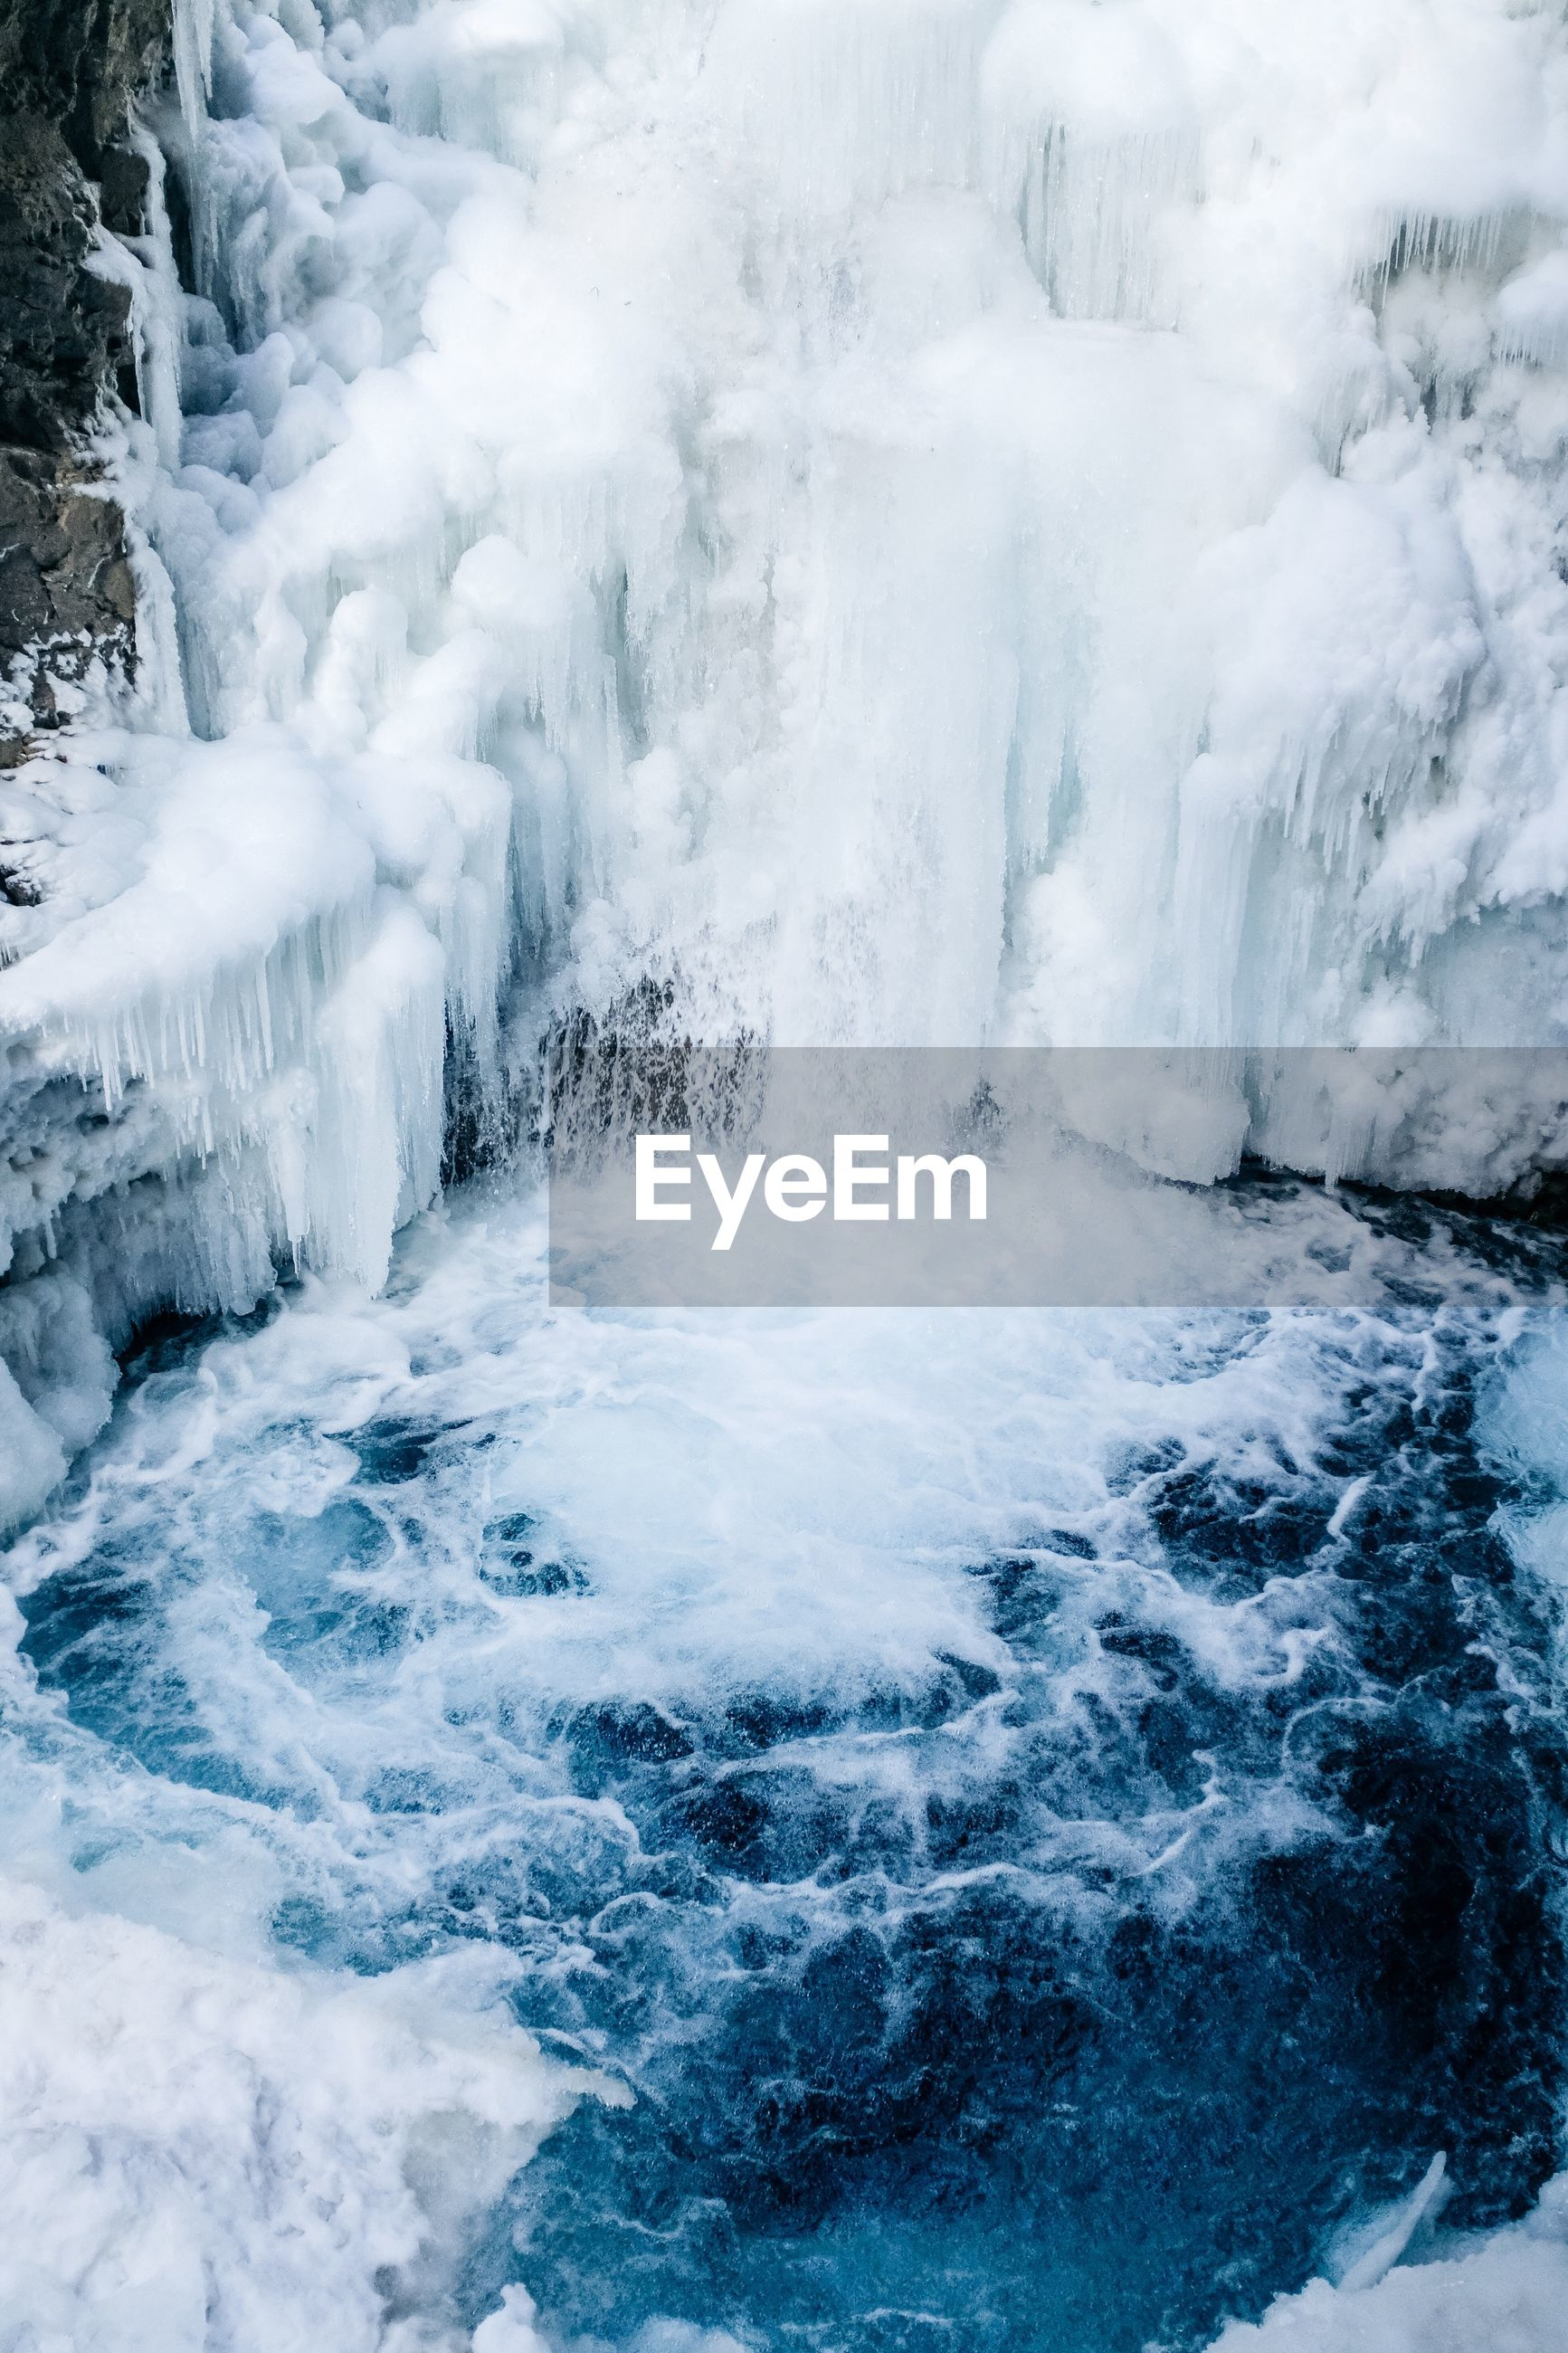 motion, nature, beauty in nature, water, long exposure, waterfall, no people, power in nature, blurred motion, day, scenics, outdoors, cold temperature, winter